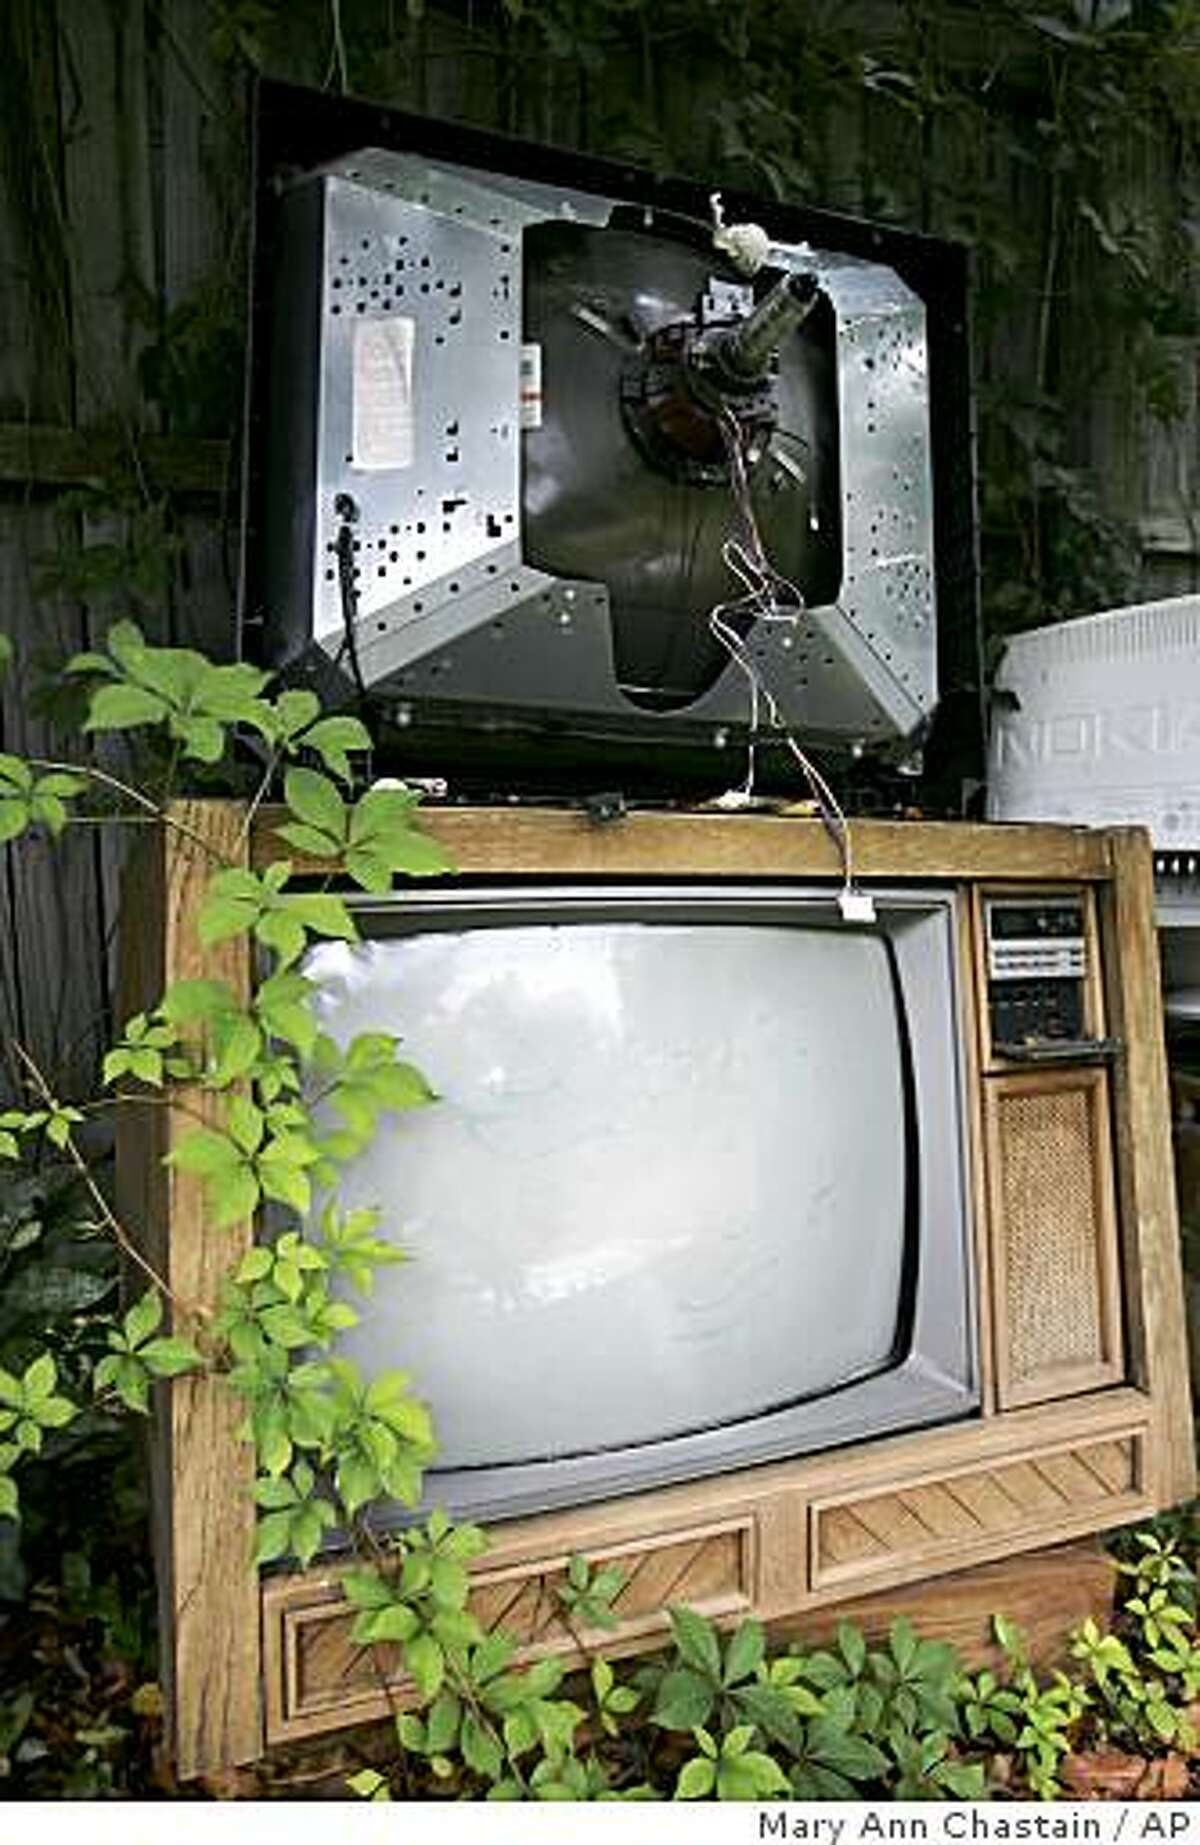 In this photo taken June 5, 2009, Ivy grows on an old console television that has been abandon at Randy's TV Repair in Lexington, S.C. Friday, June 5, 2009. The county will be switching from an analogue signal to digital Friday, June 12, making these old television inoperable unless it is connected to a converter box.(AP Photo/Mary Ann Chastain)